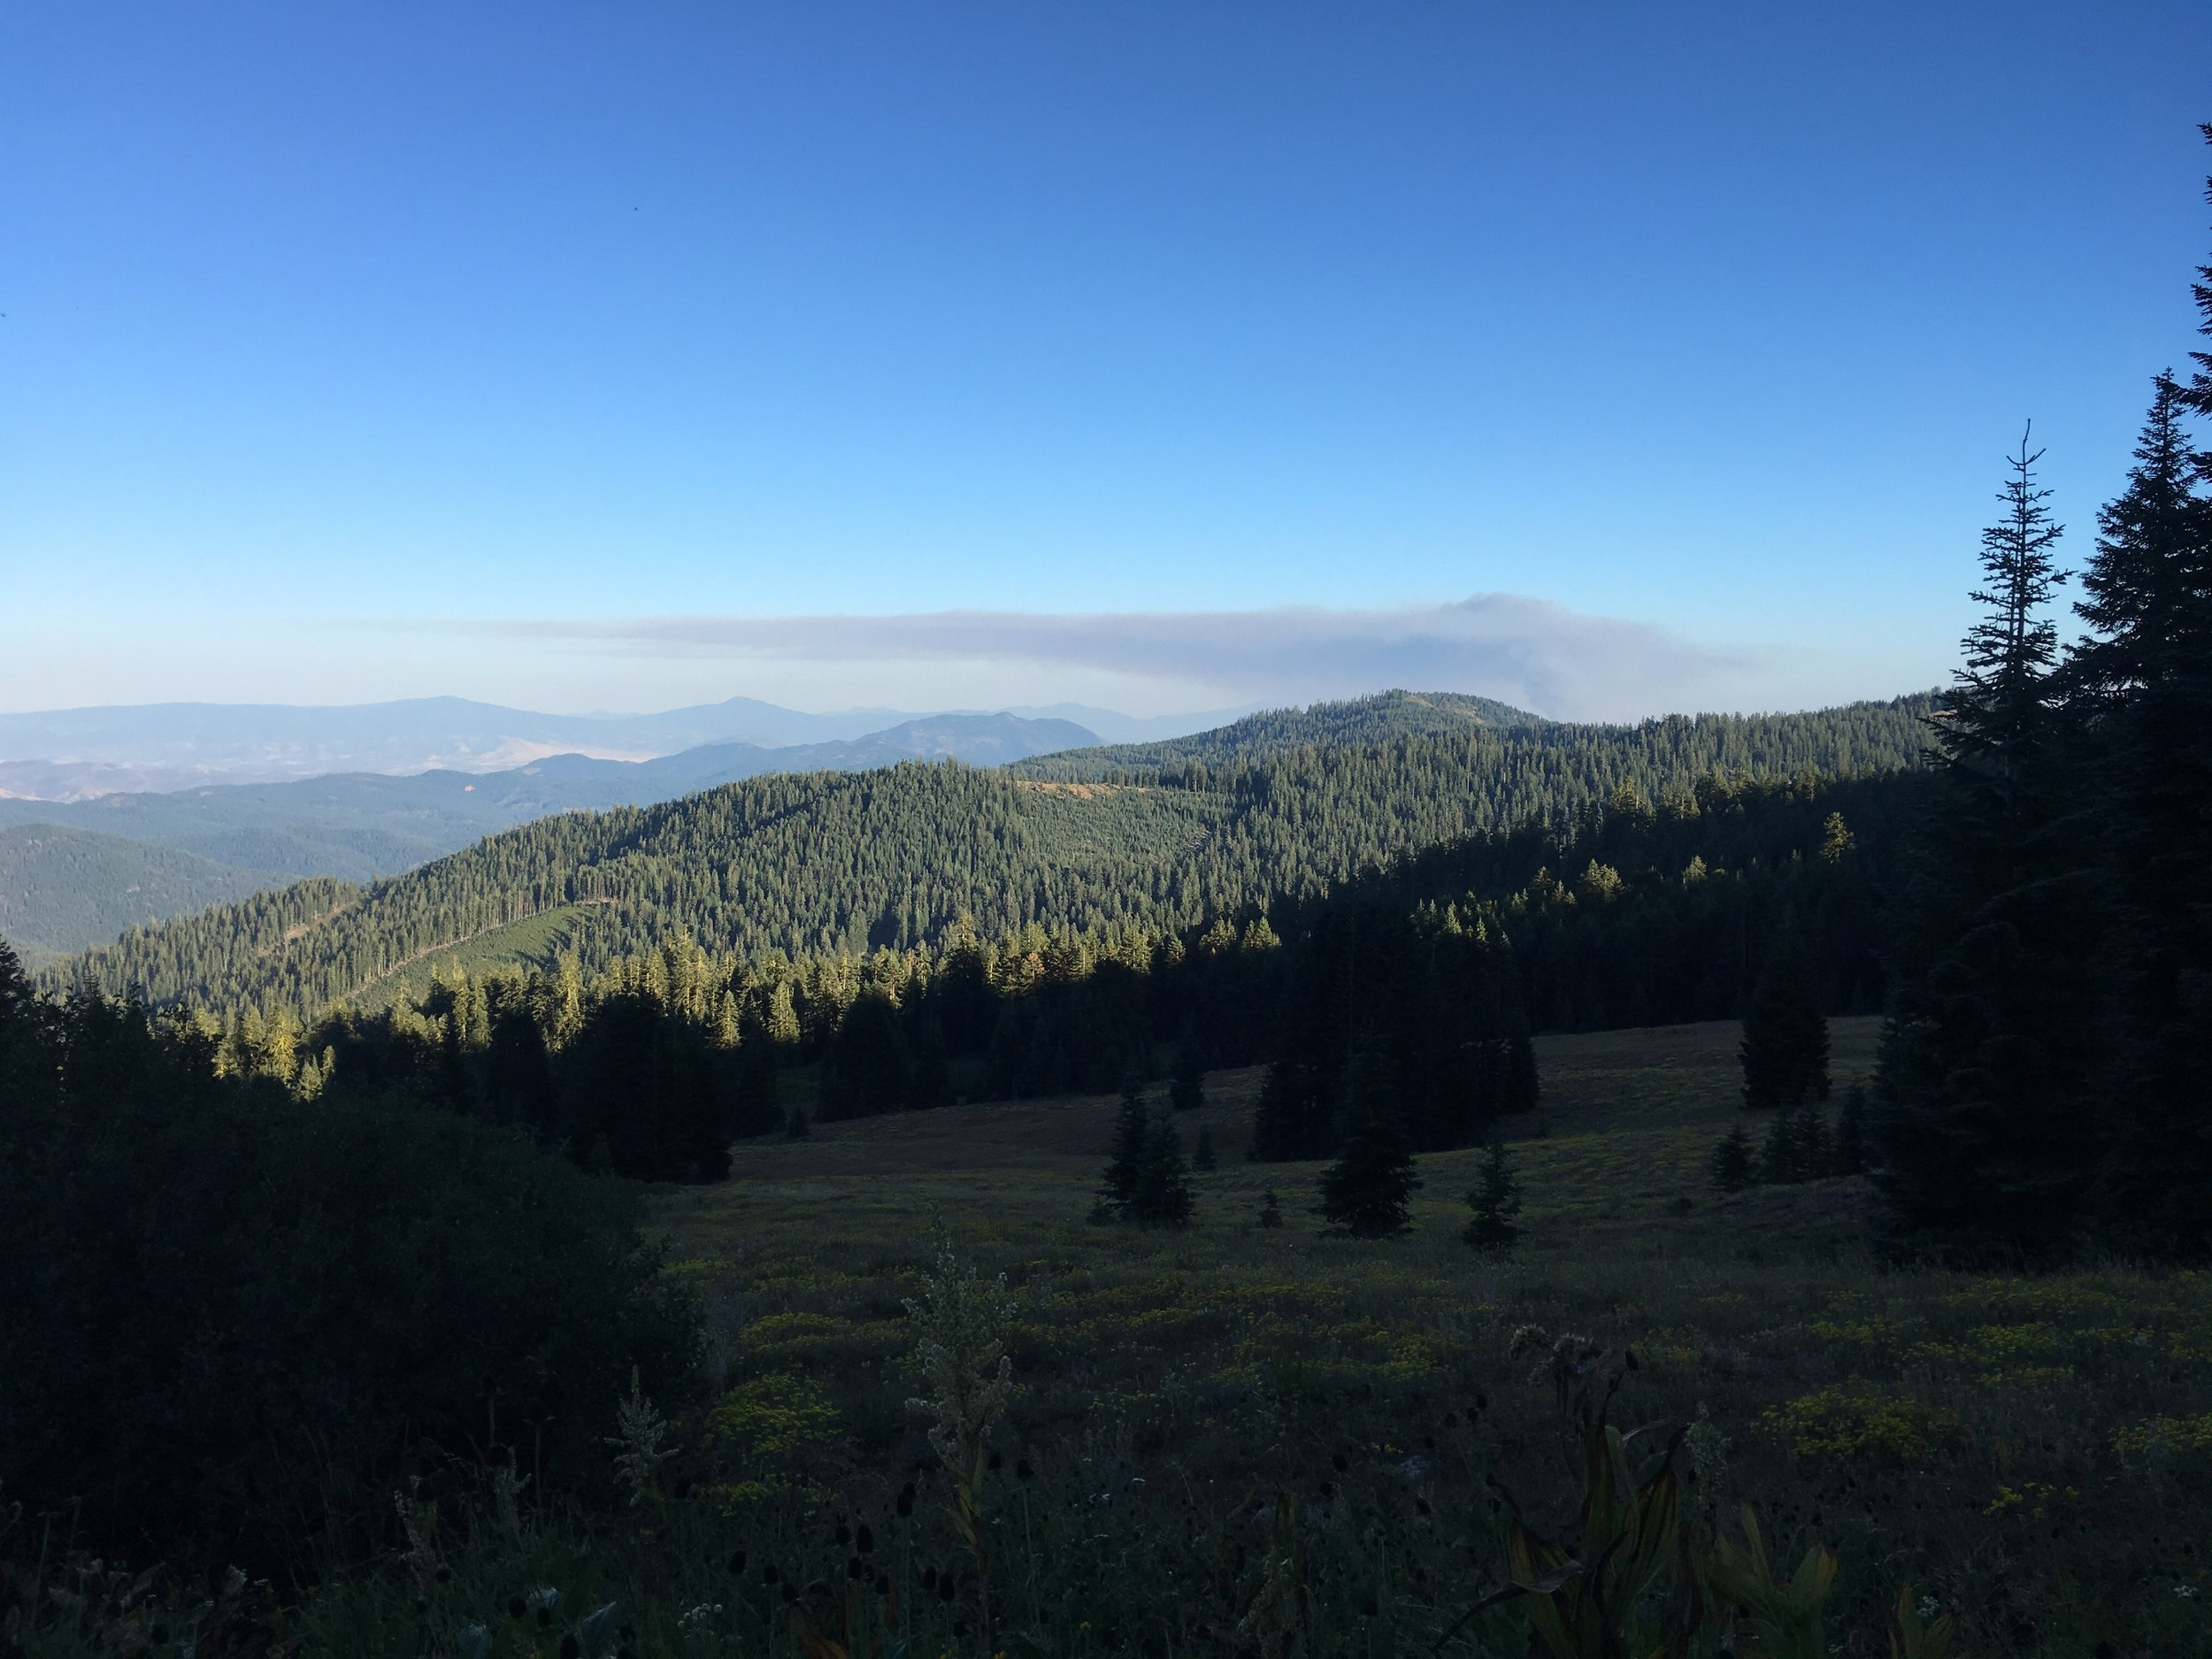 Same ridgeline 3 hours later and a much larger plume.